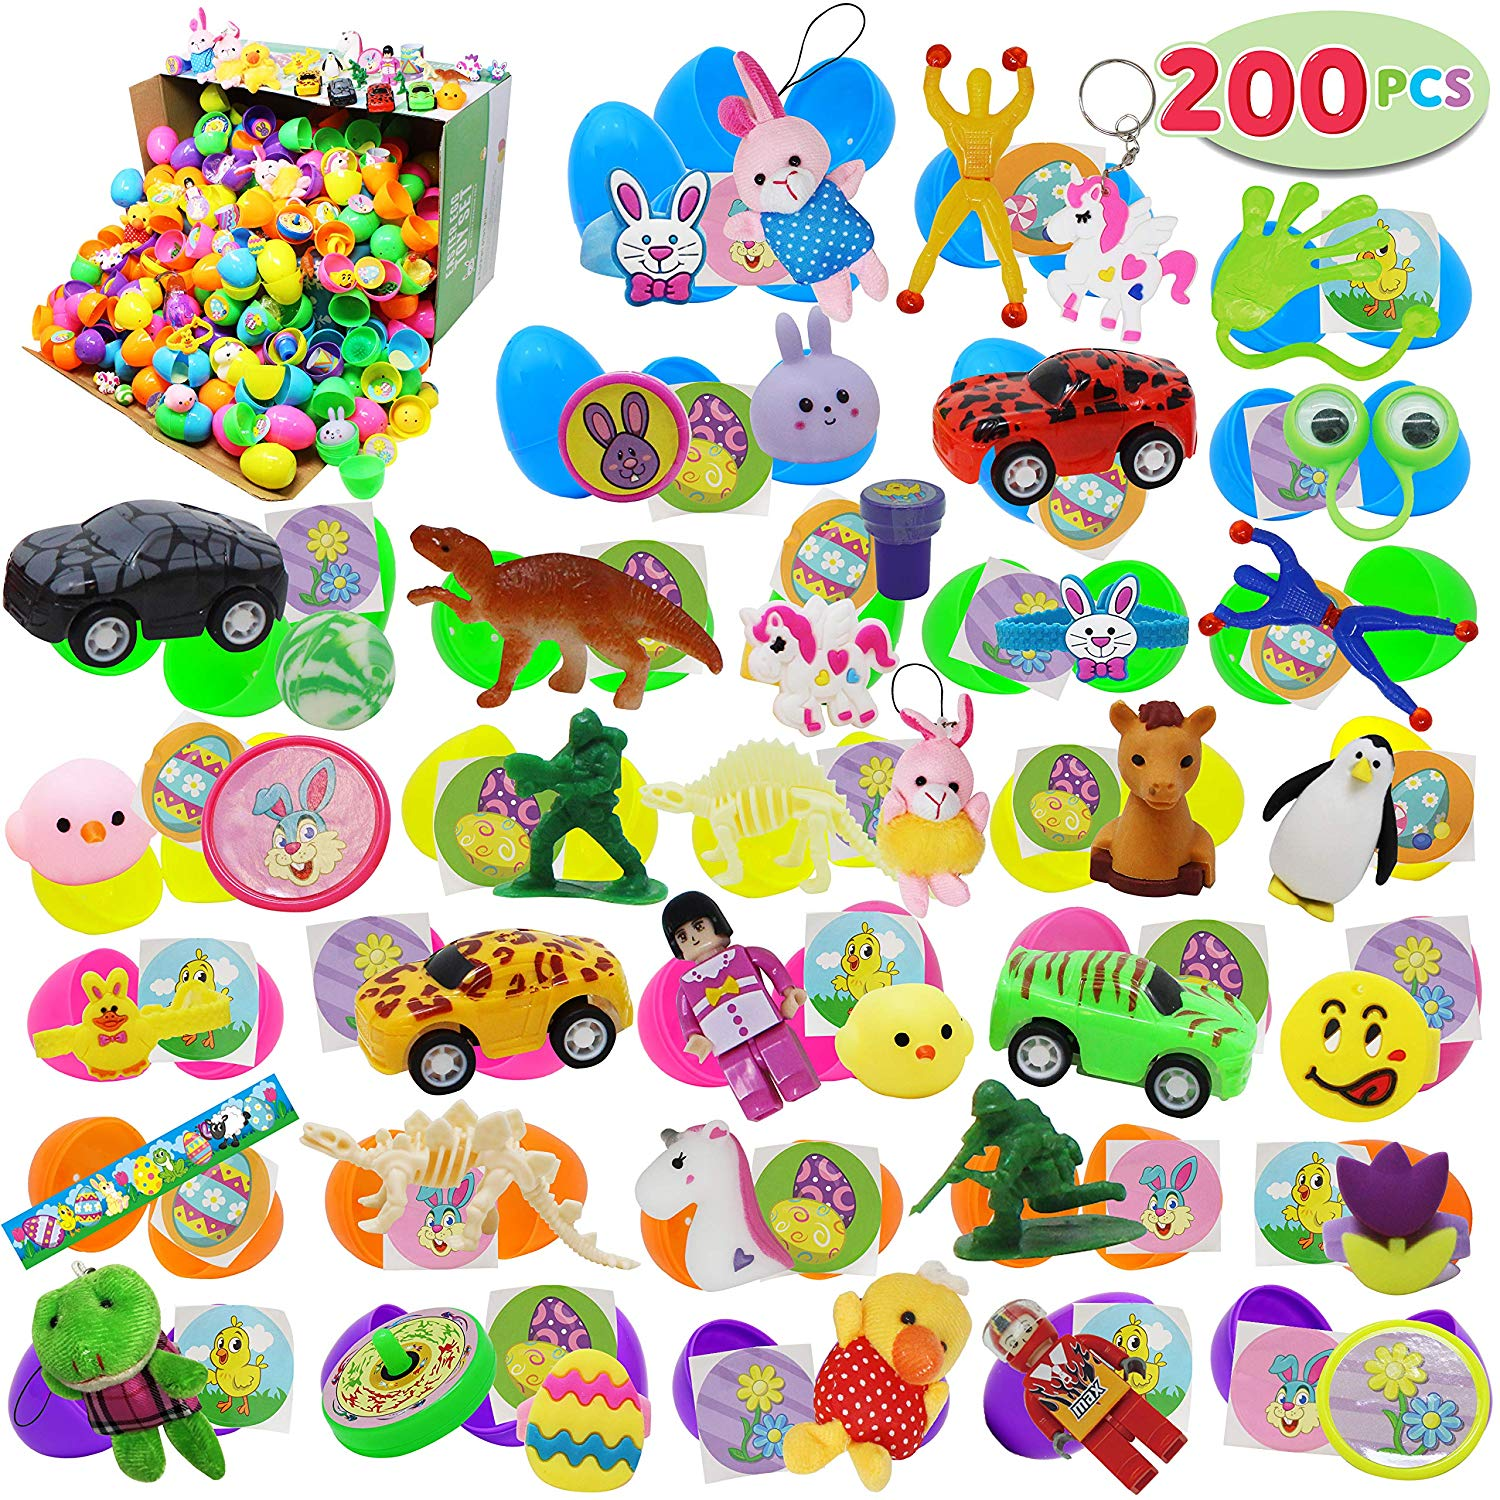 JOYIN  200 Pcs Easter Eggs w/ toys